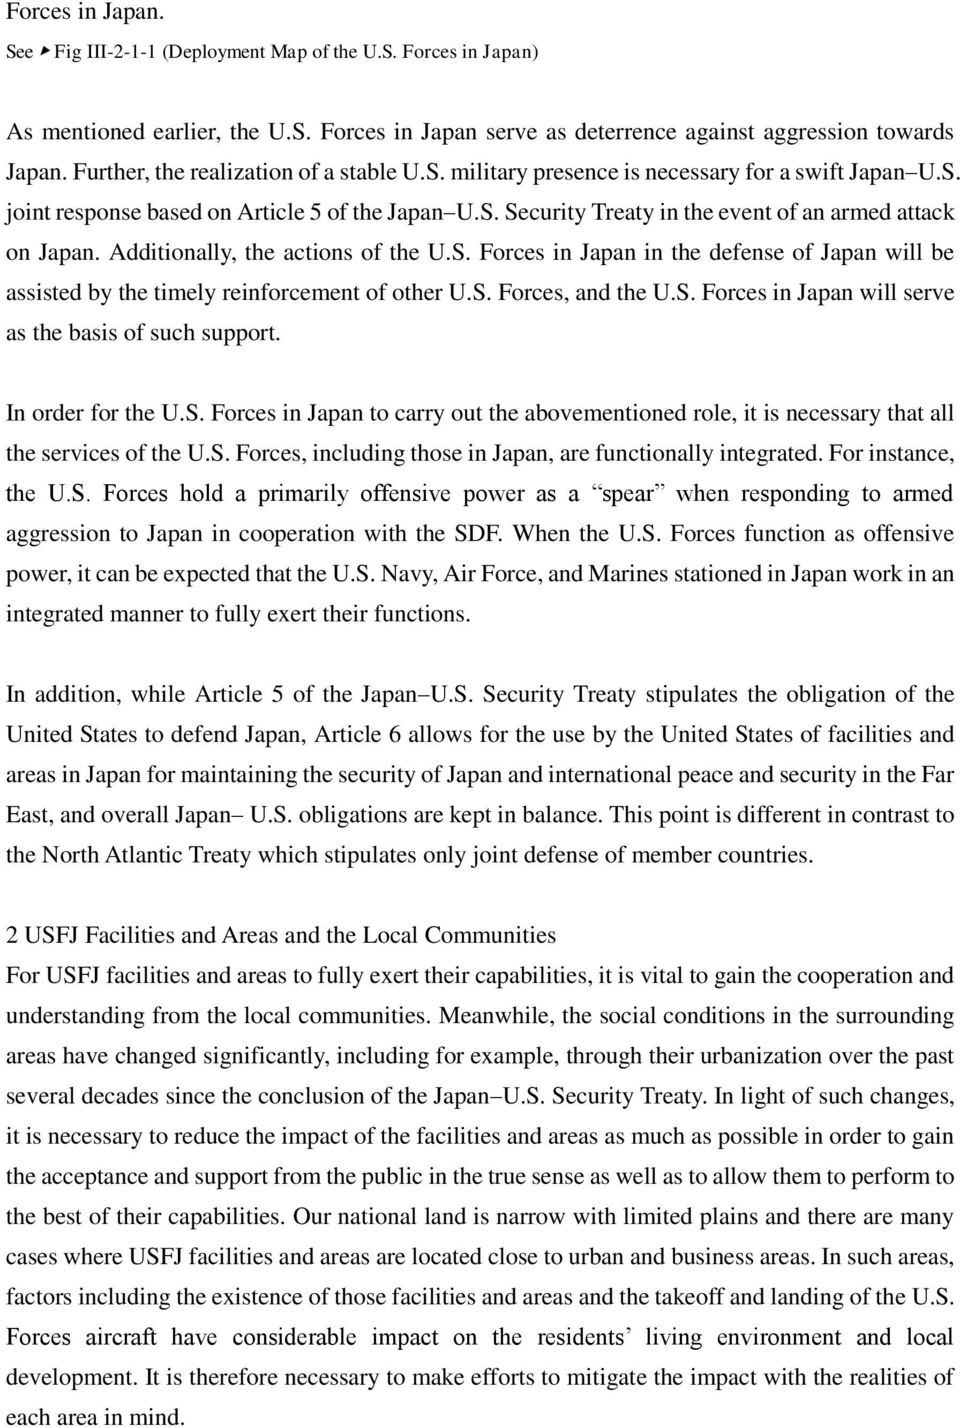 Additionally, the actions of the U.S. Forces in Japan in the defense of Japan will be assisted by the timely reinforcement of other U.S. Forces, and the U.S. Forces in Japan will serve as the basis of such support.